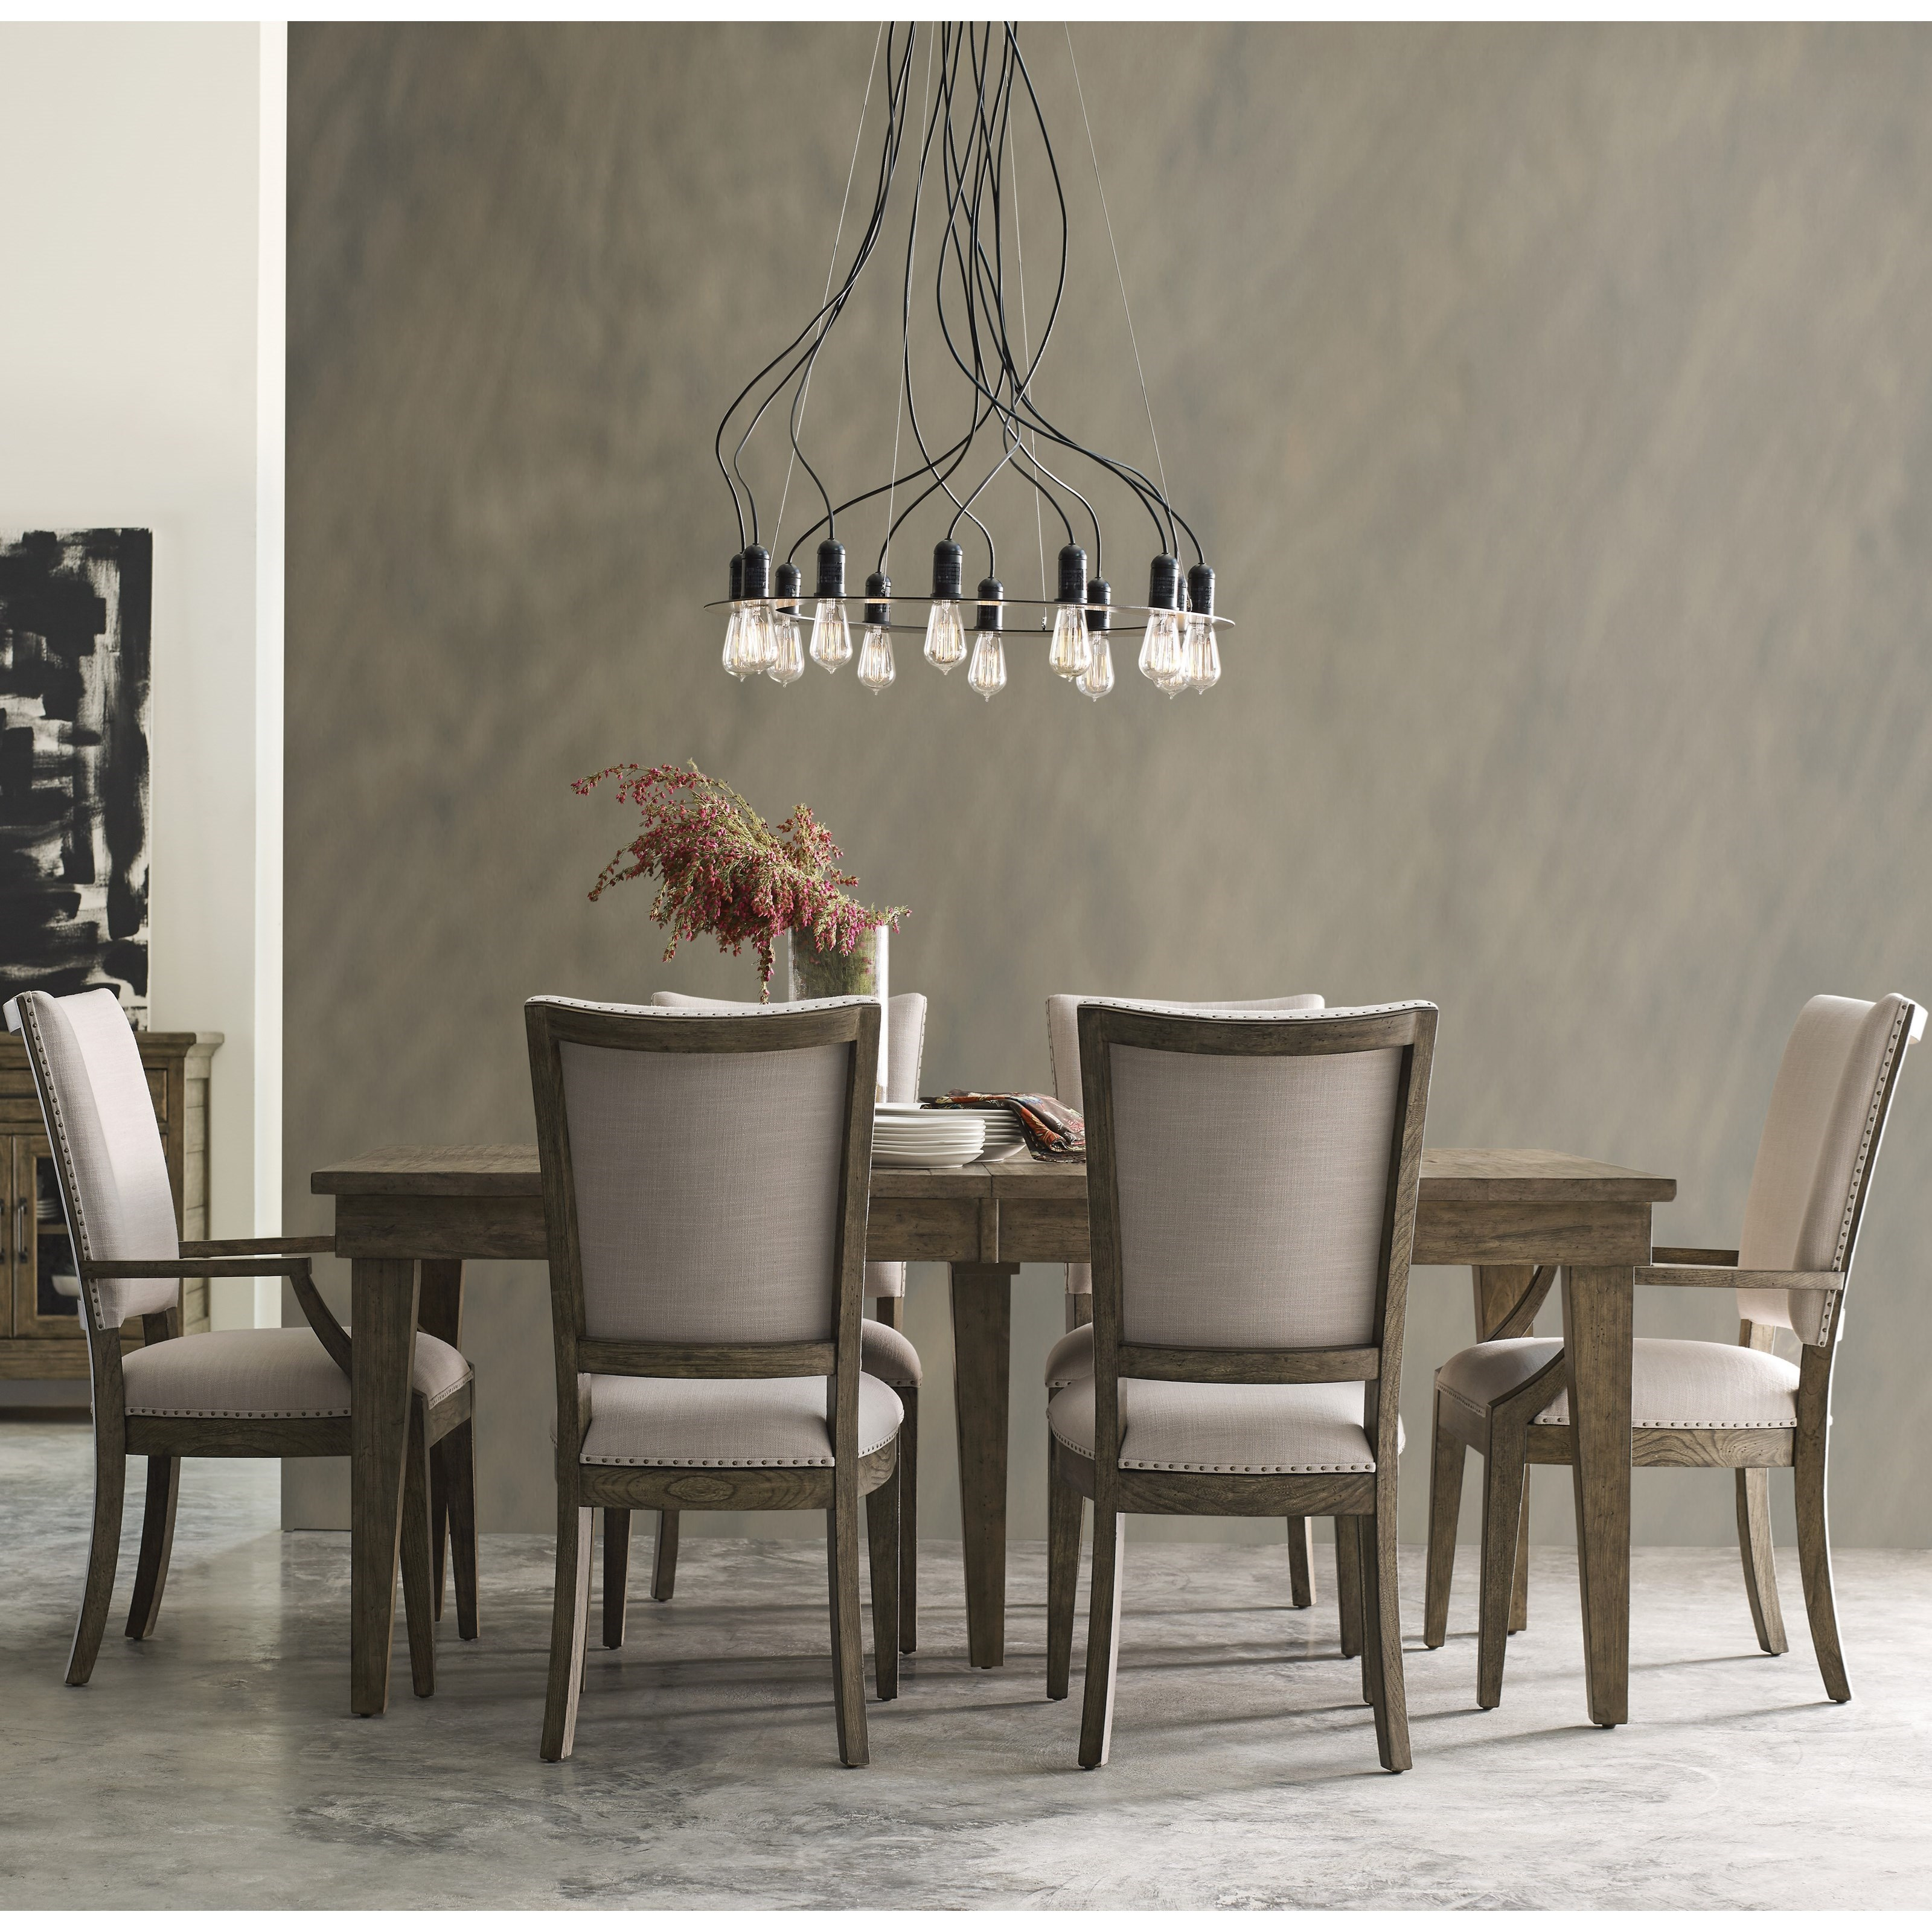 Plank Road 7 Pc Dining Set w/ Rankin Table by Kincaid Furniture at Johnny Janosik